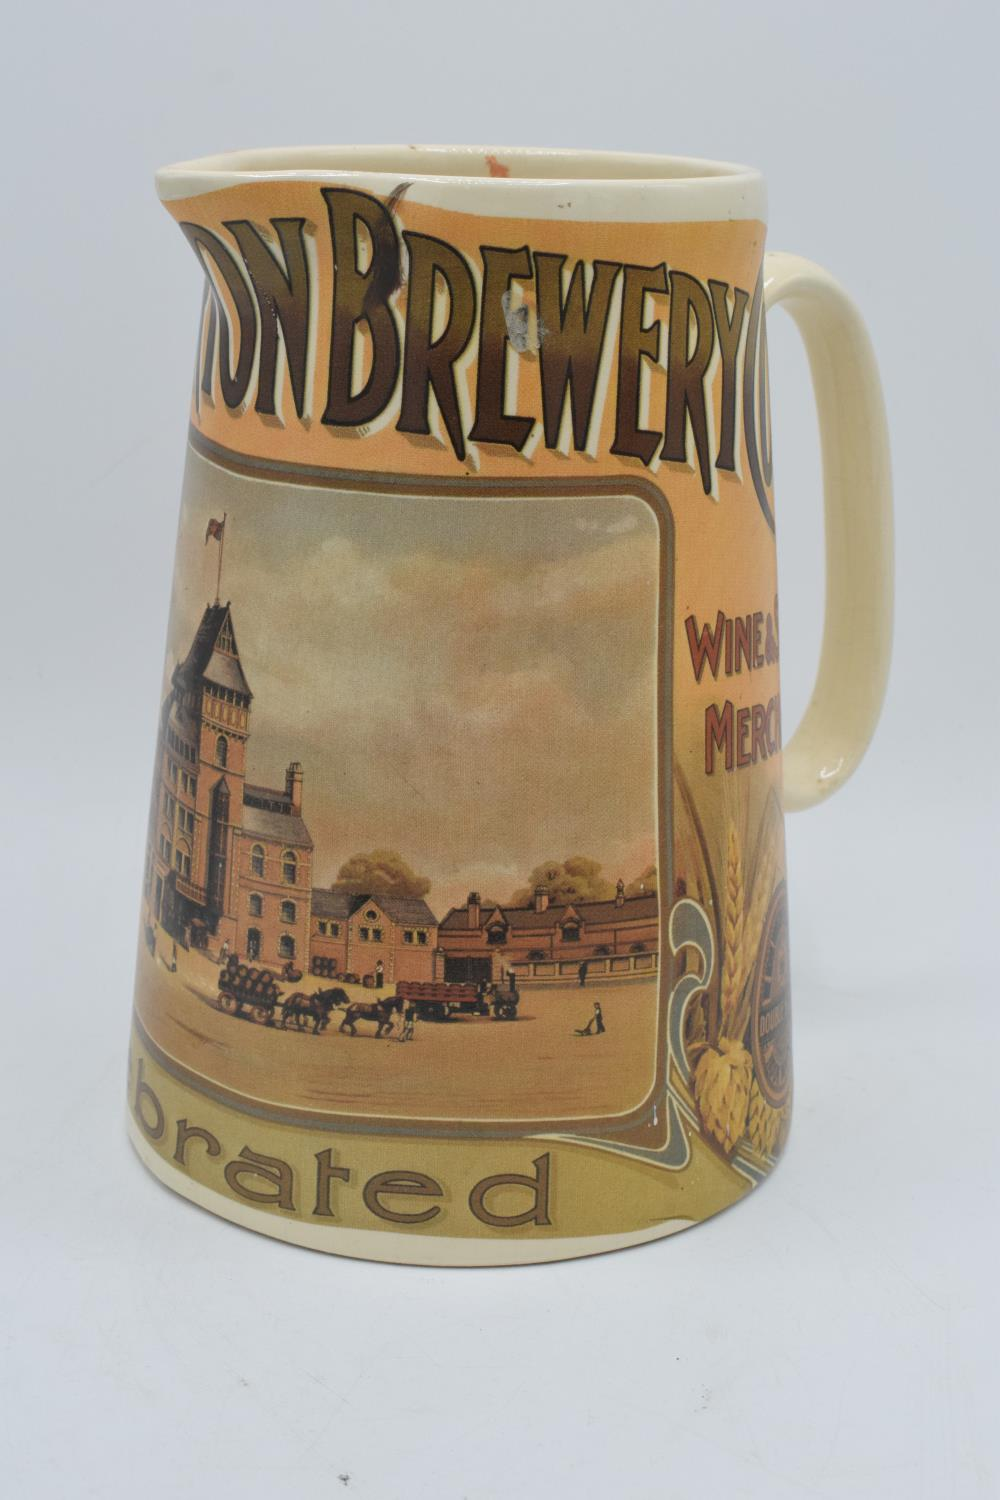 'The Hook Norton Brewery Co' late 20th century transfer print pub jug. In good condition with no - Image 2 of 5